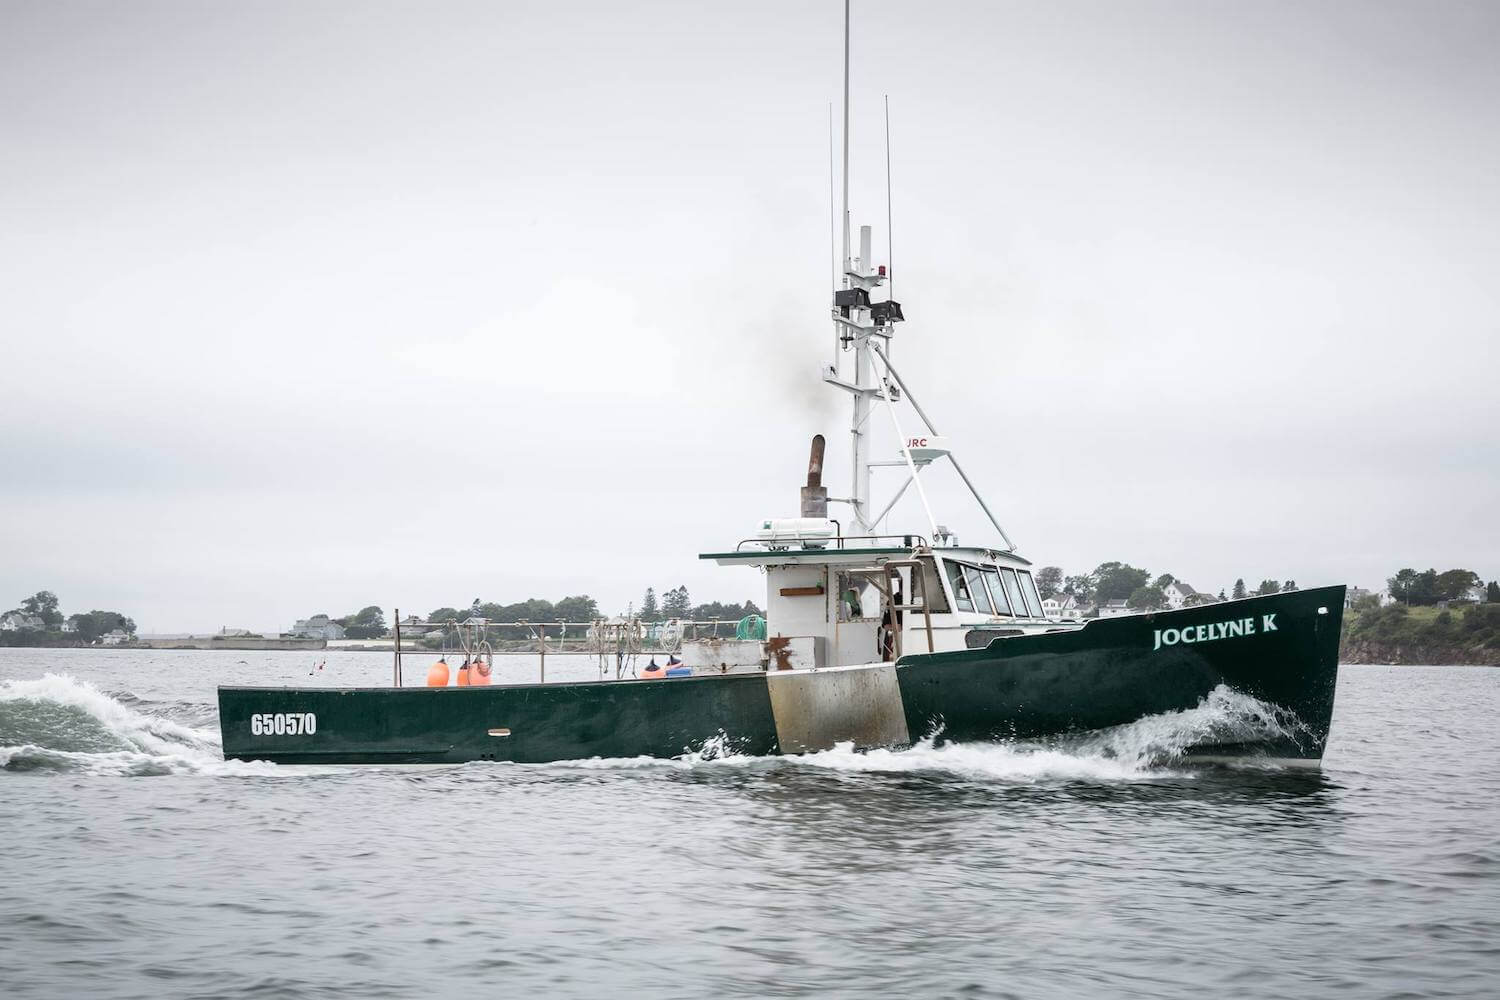 Herman Coombs's fishing boat named